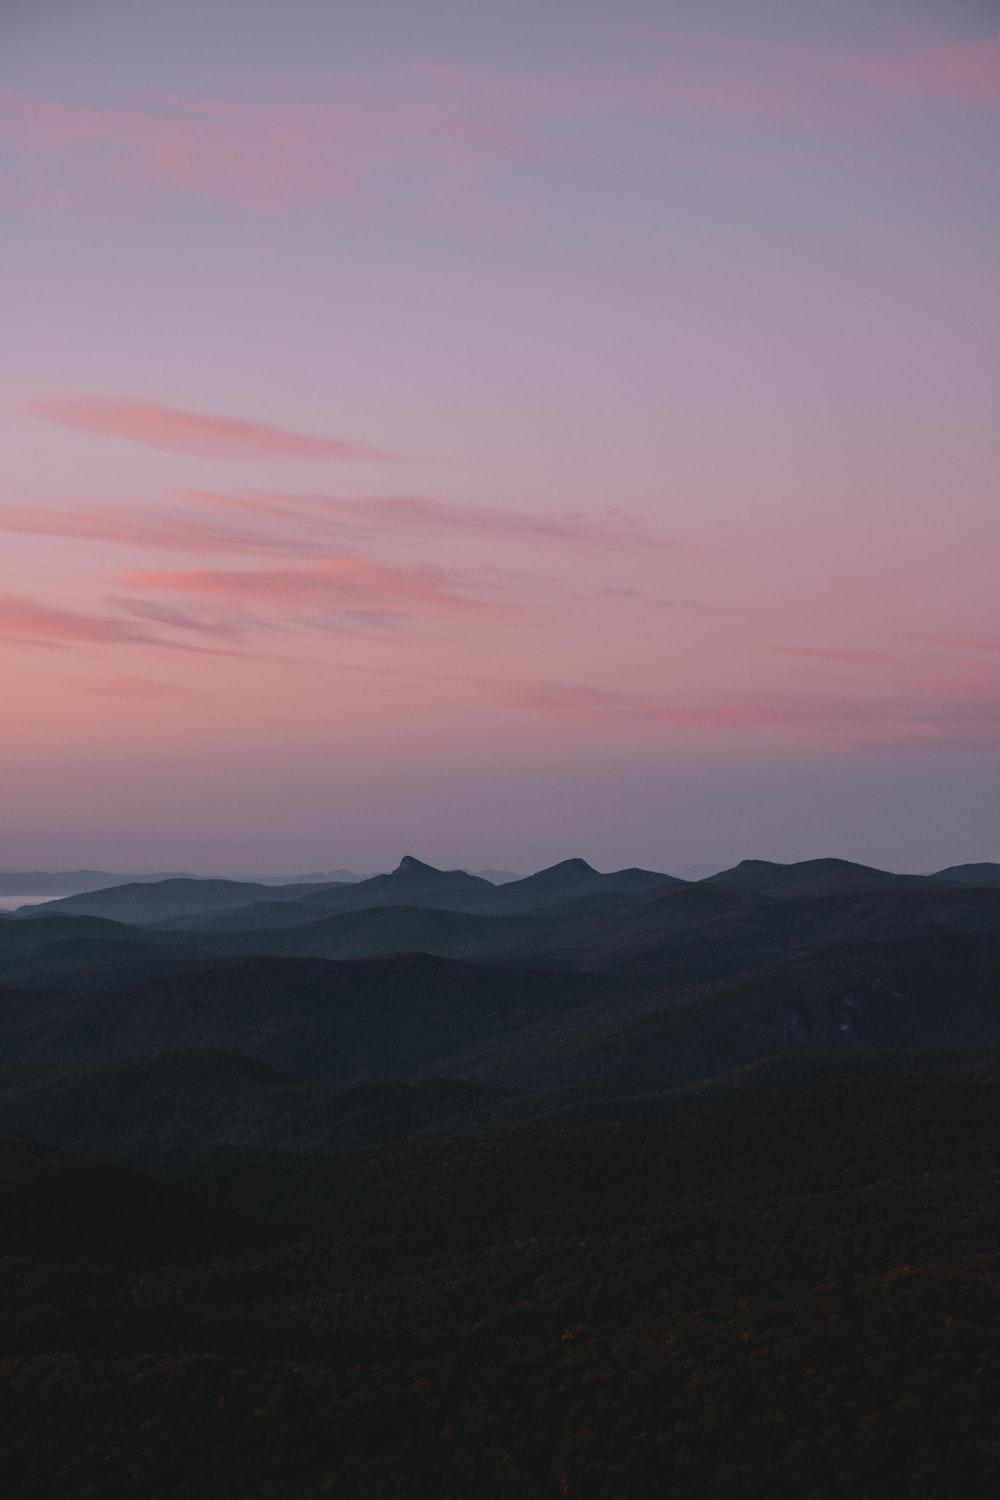 silhouette of mountains under pink sky